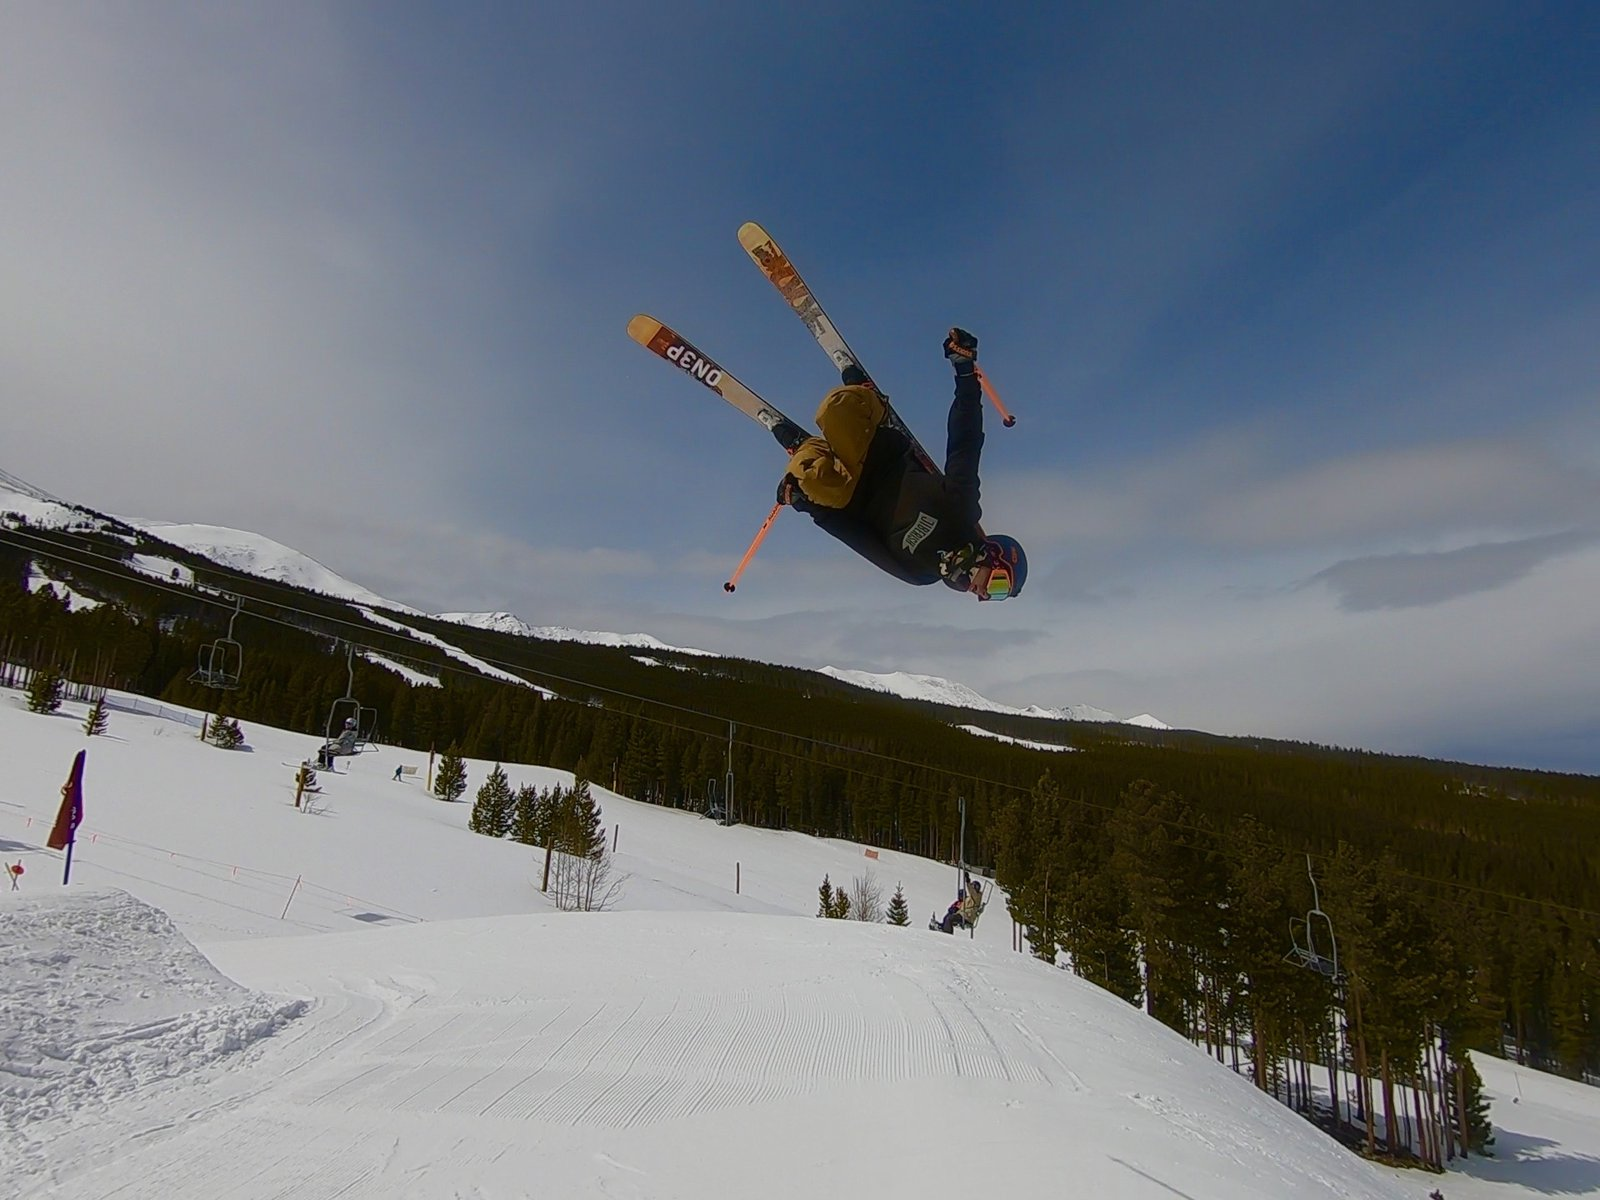 Laid out at breck